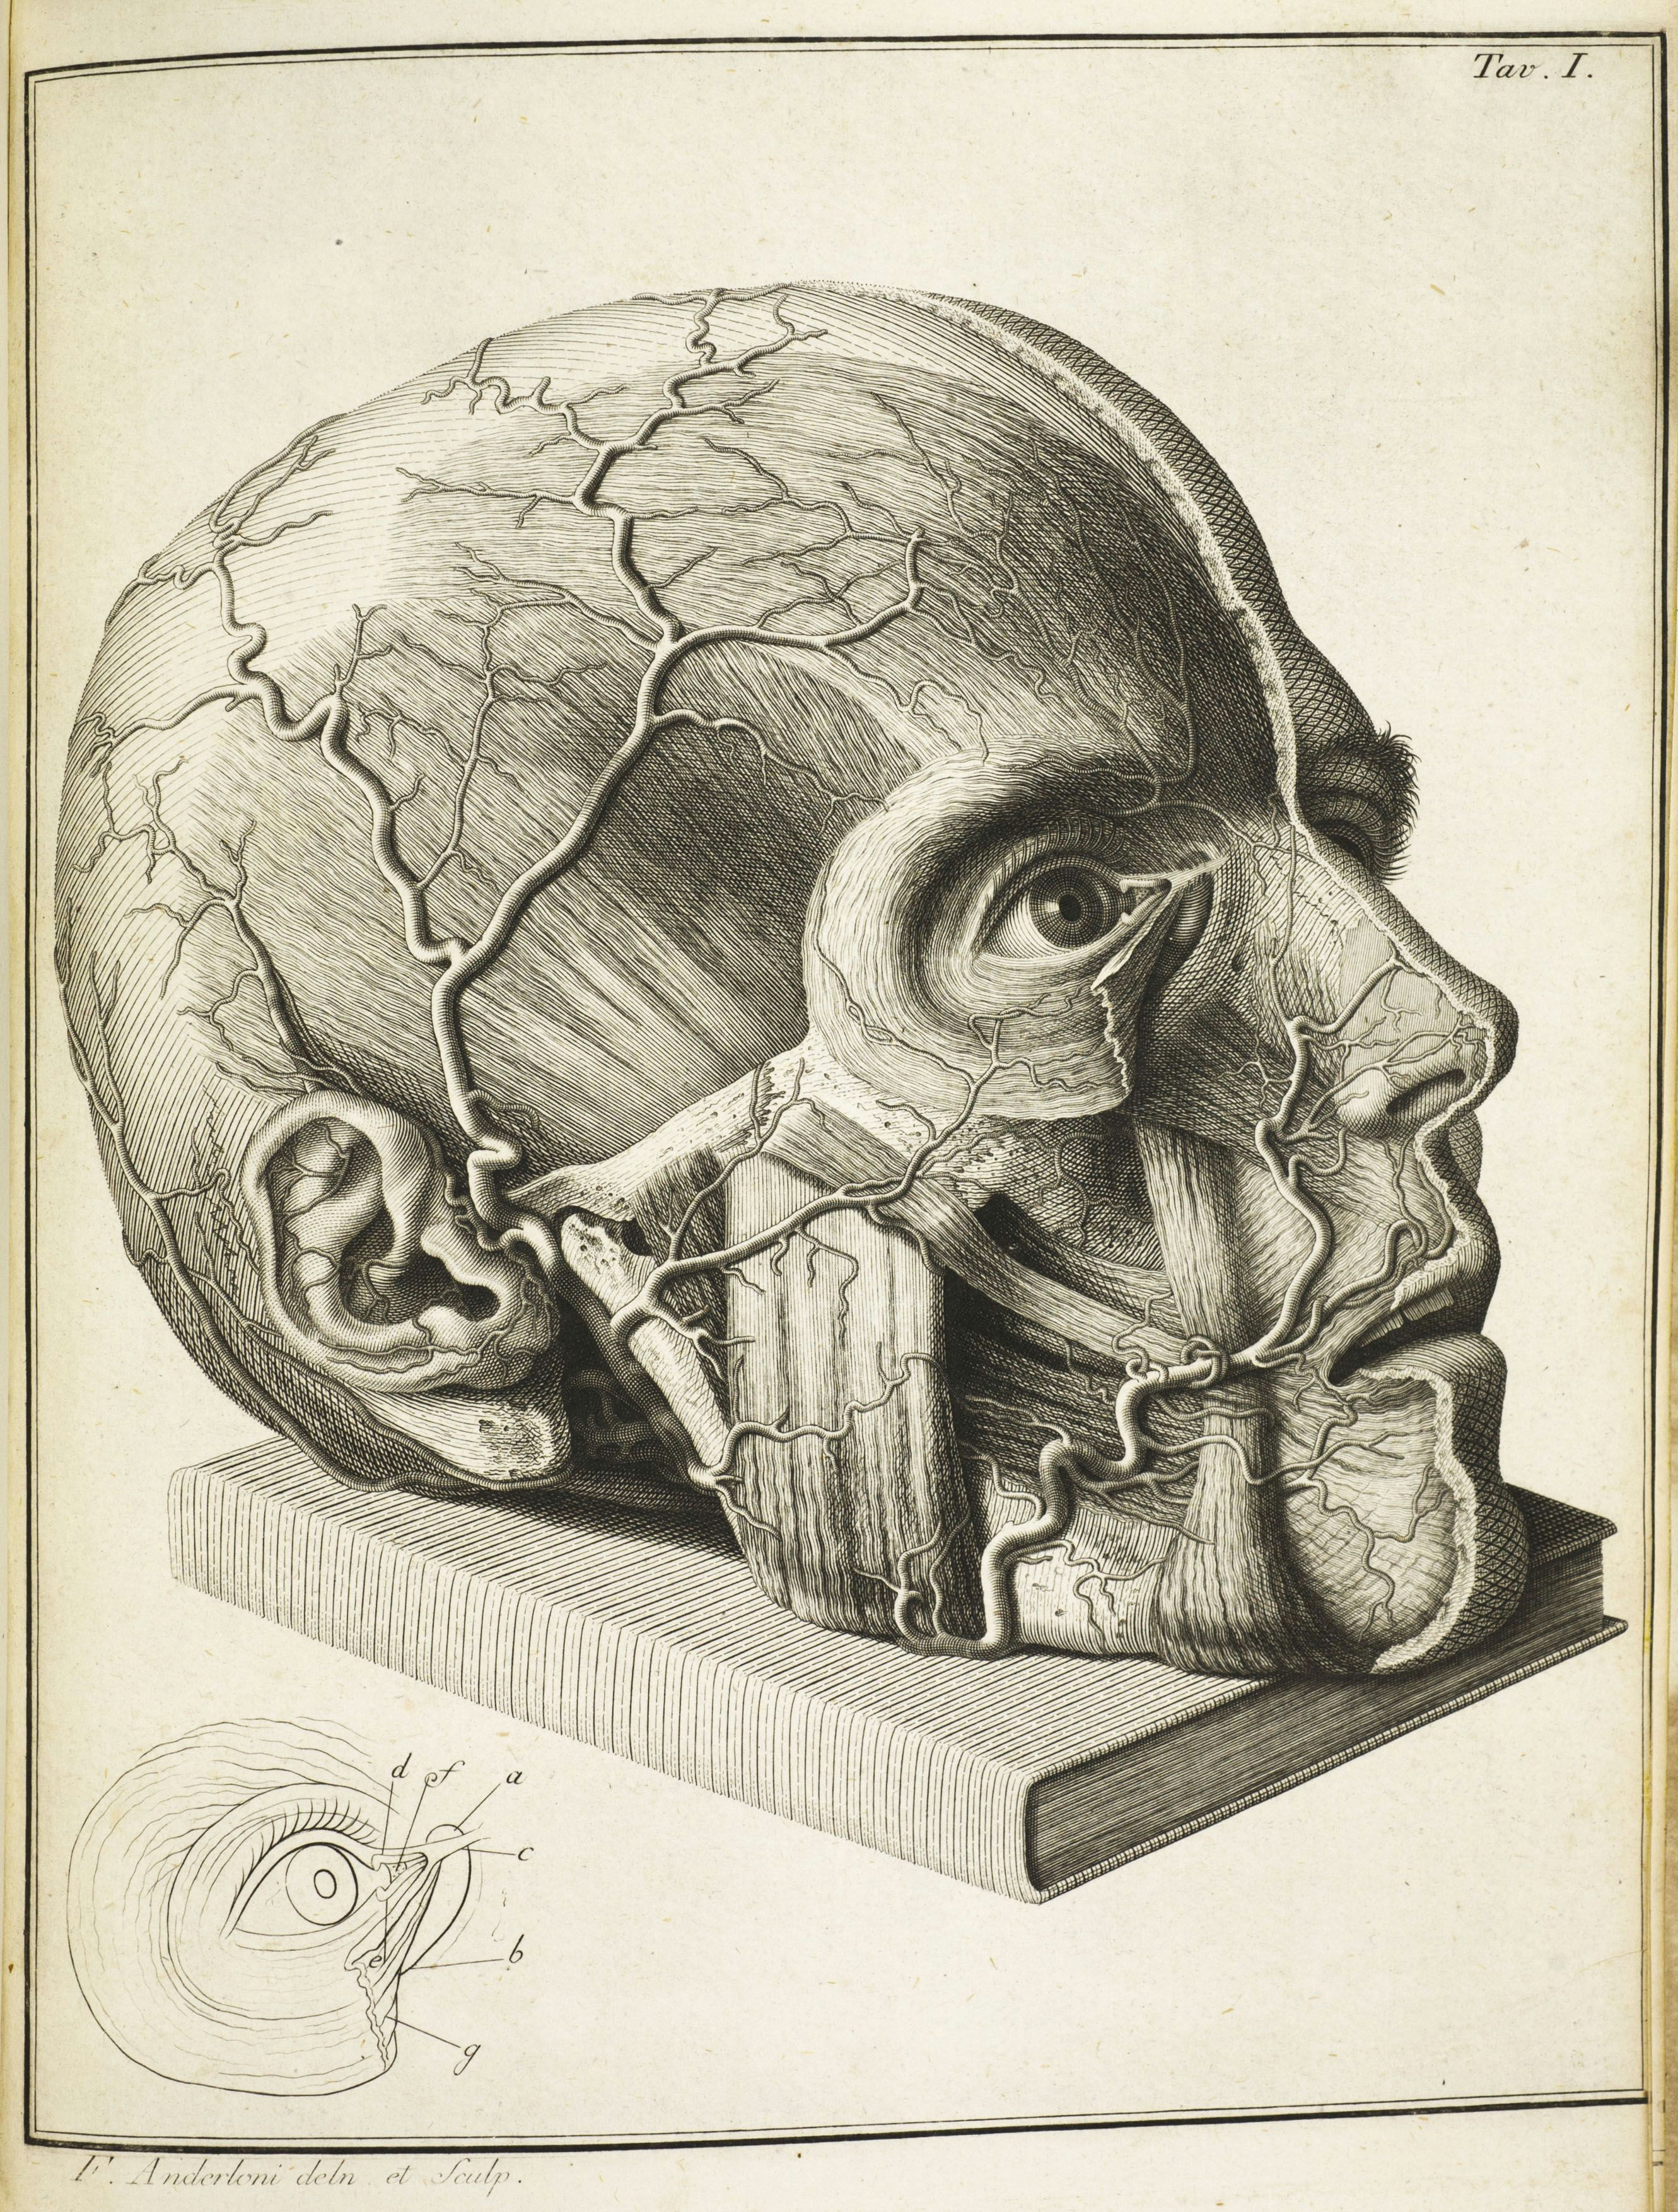 16th century drawings of disease are as fascinating as they are disturbing morbid anatomy pinterest anatomy exhibitions and drawings